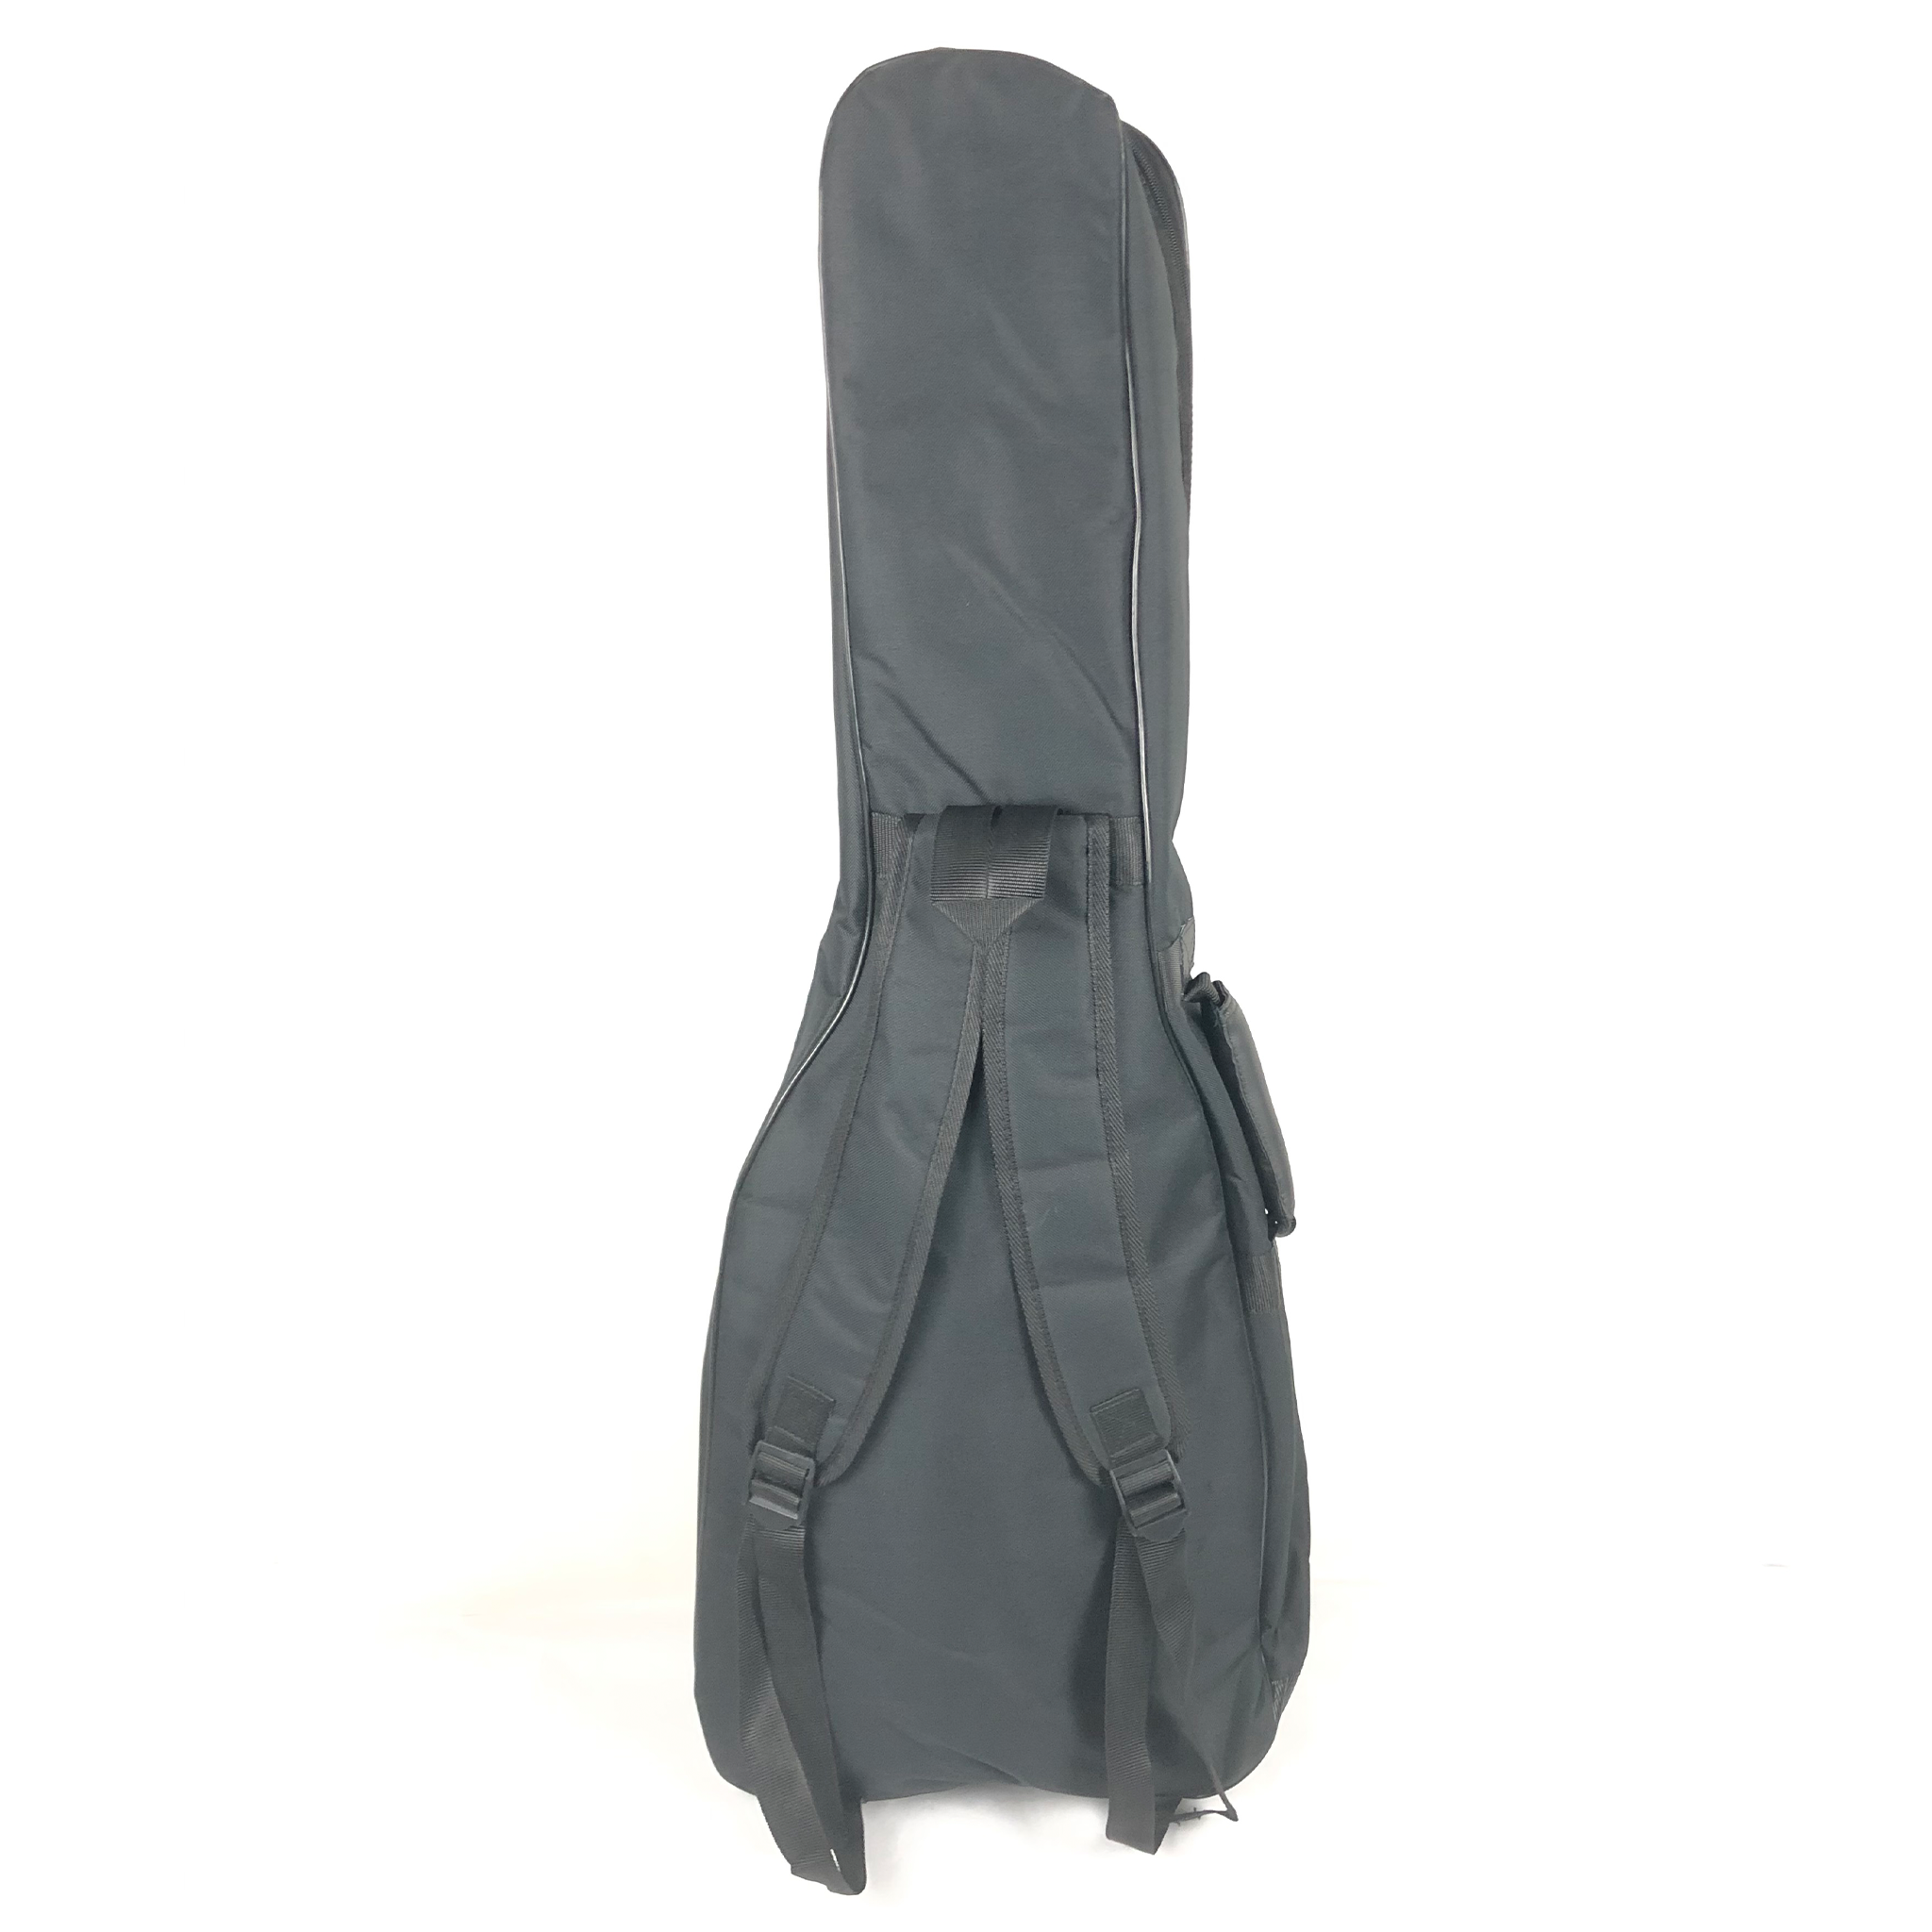 Lazer GB-C10-38 Classical Guitar Gig Bag (38 inch - Scale)